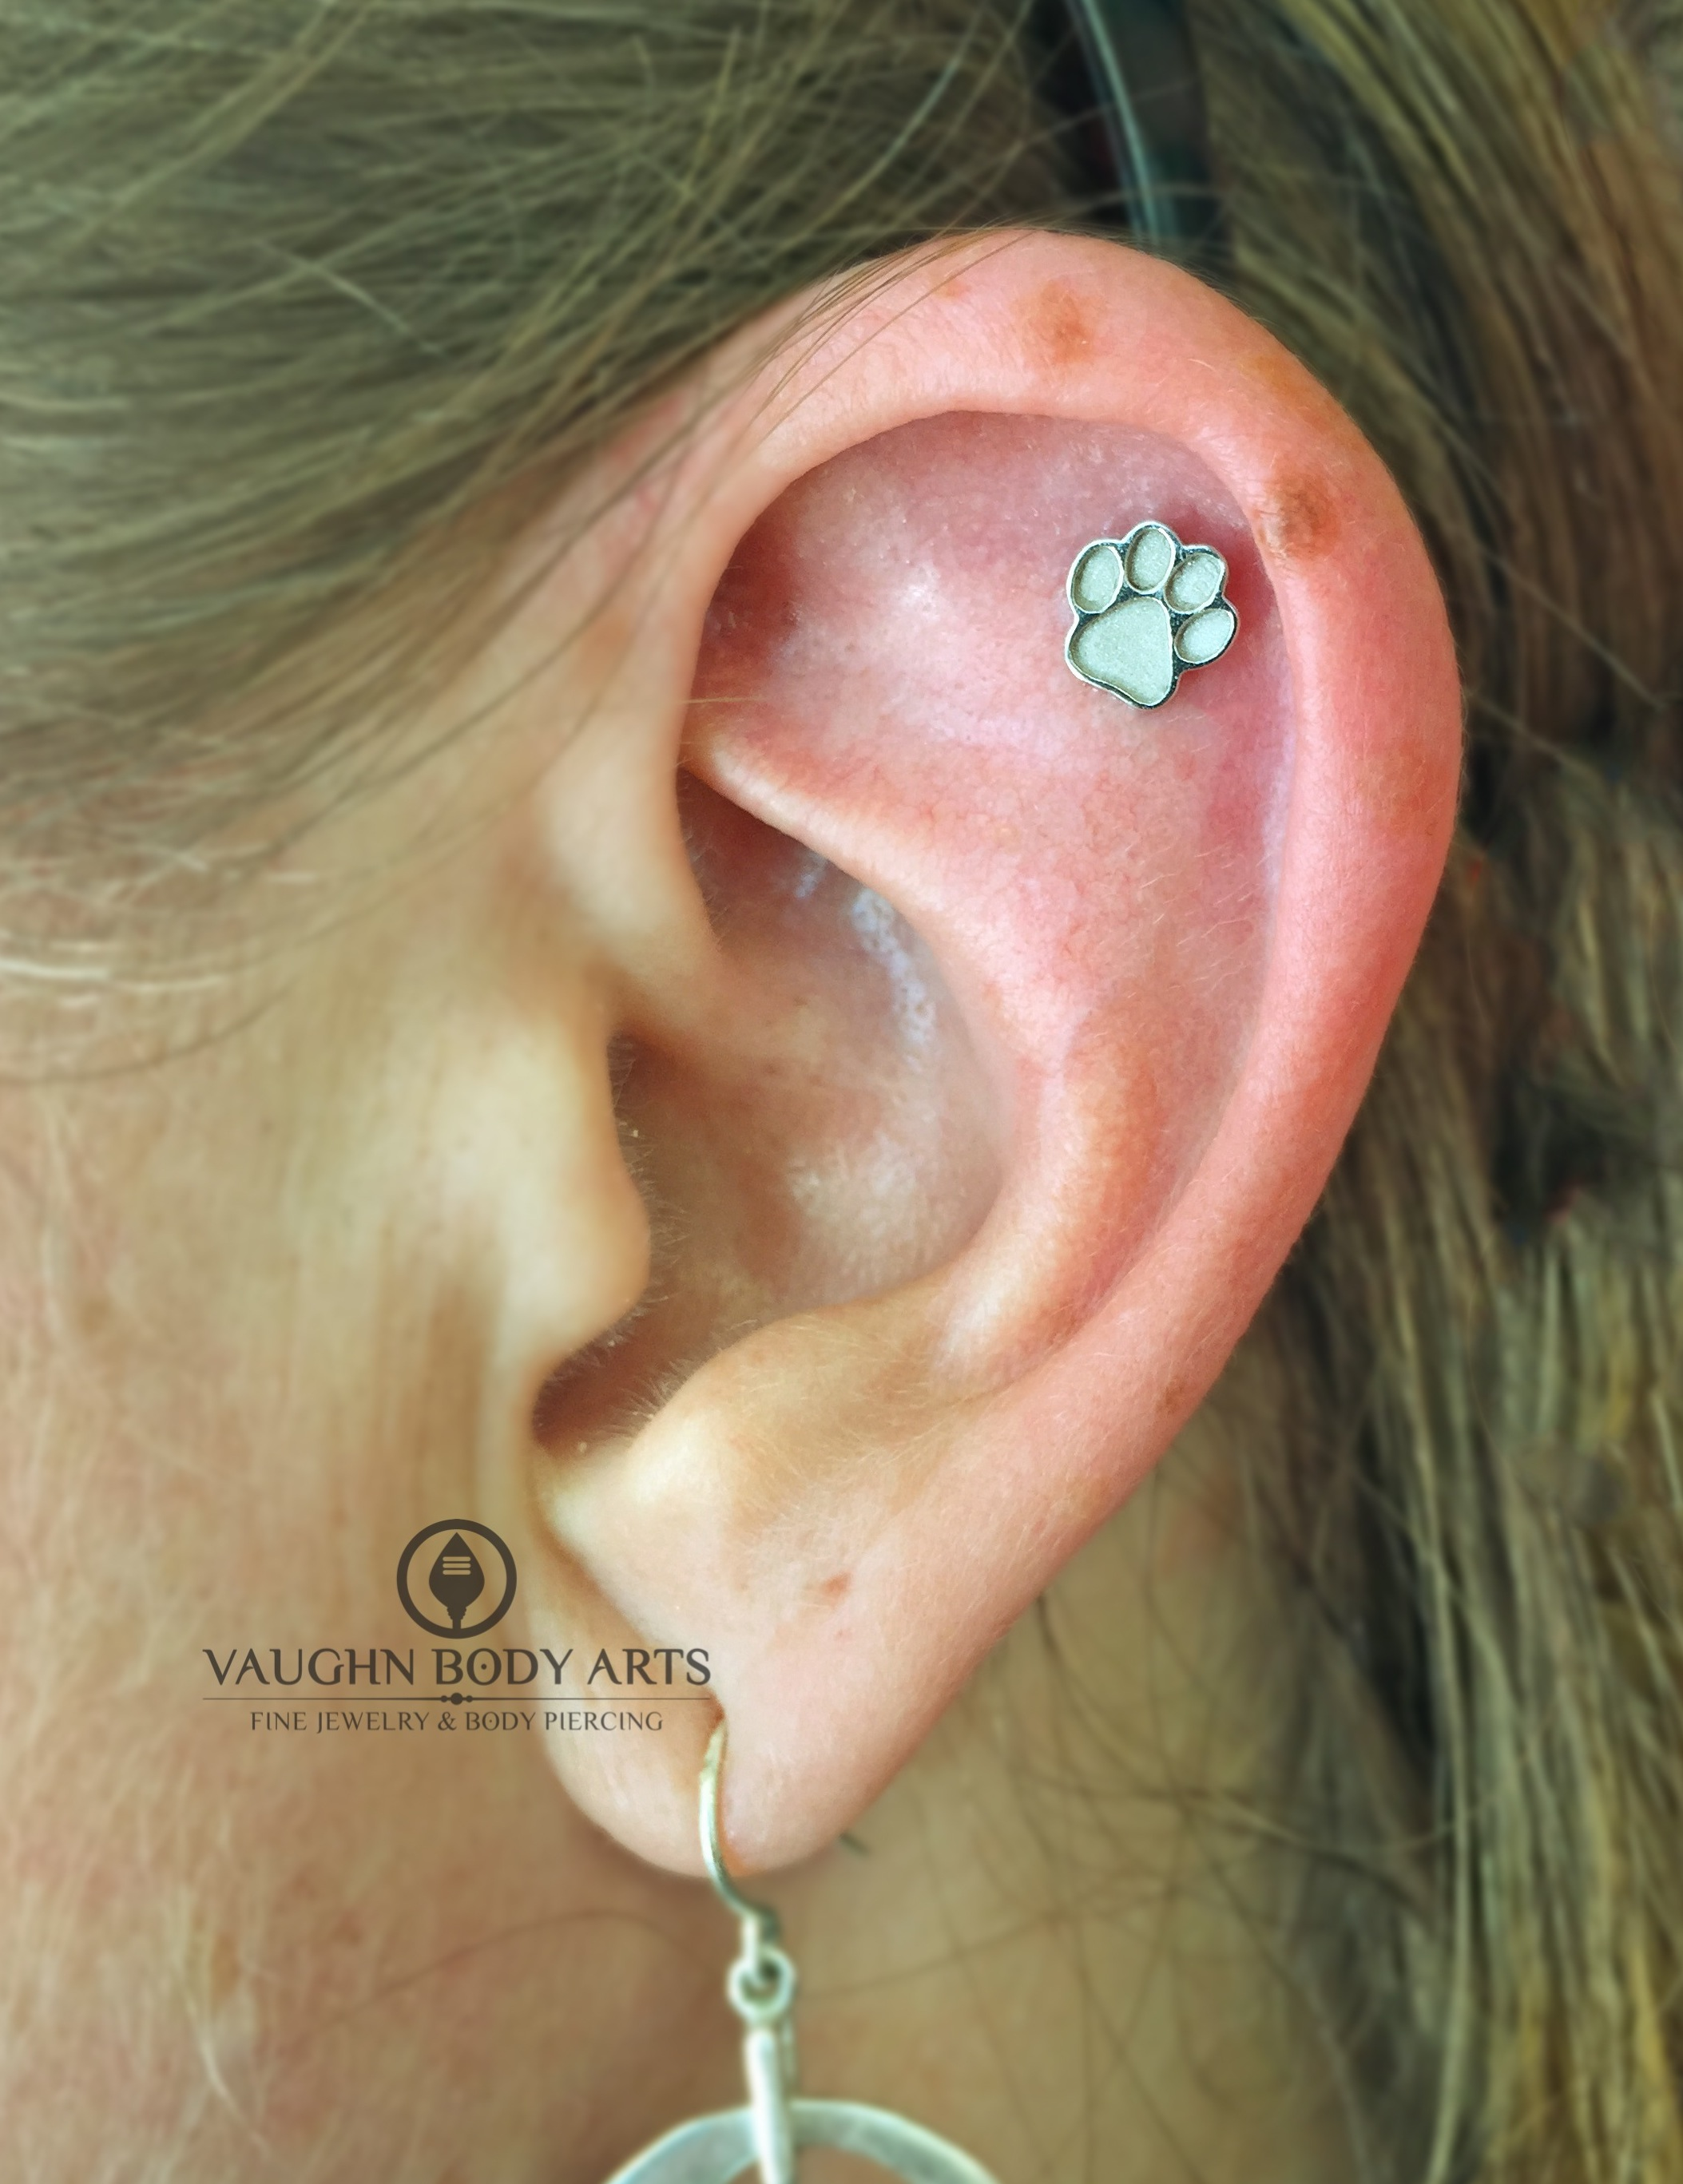 Helix piercing featuring a 14k white gold paw print end from BVLA.